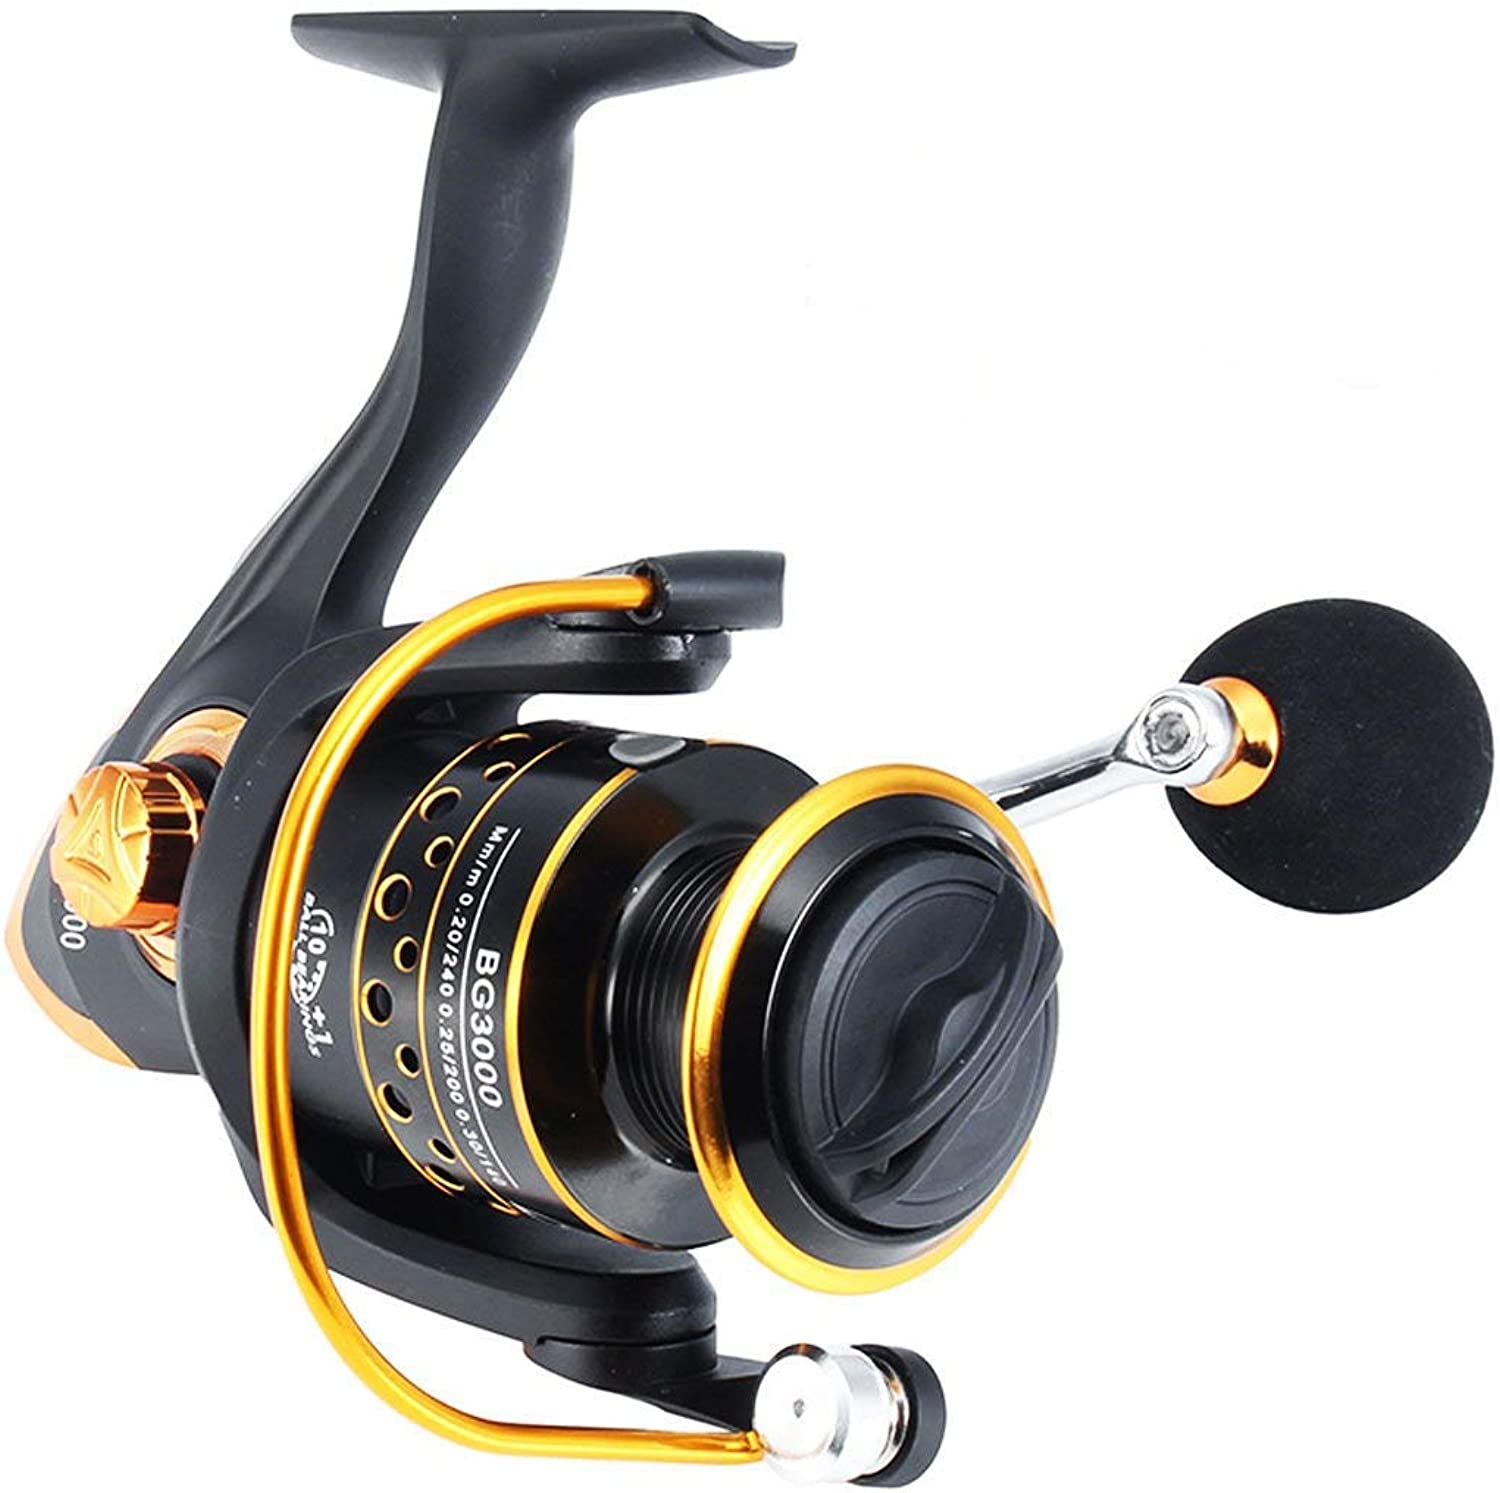 Reel Bobing Fishing reel spinning reel 1000 2000 3000 4000 5000 6000 10 + 1BB both handsclass lightweight fishing reel 3000